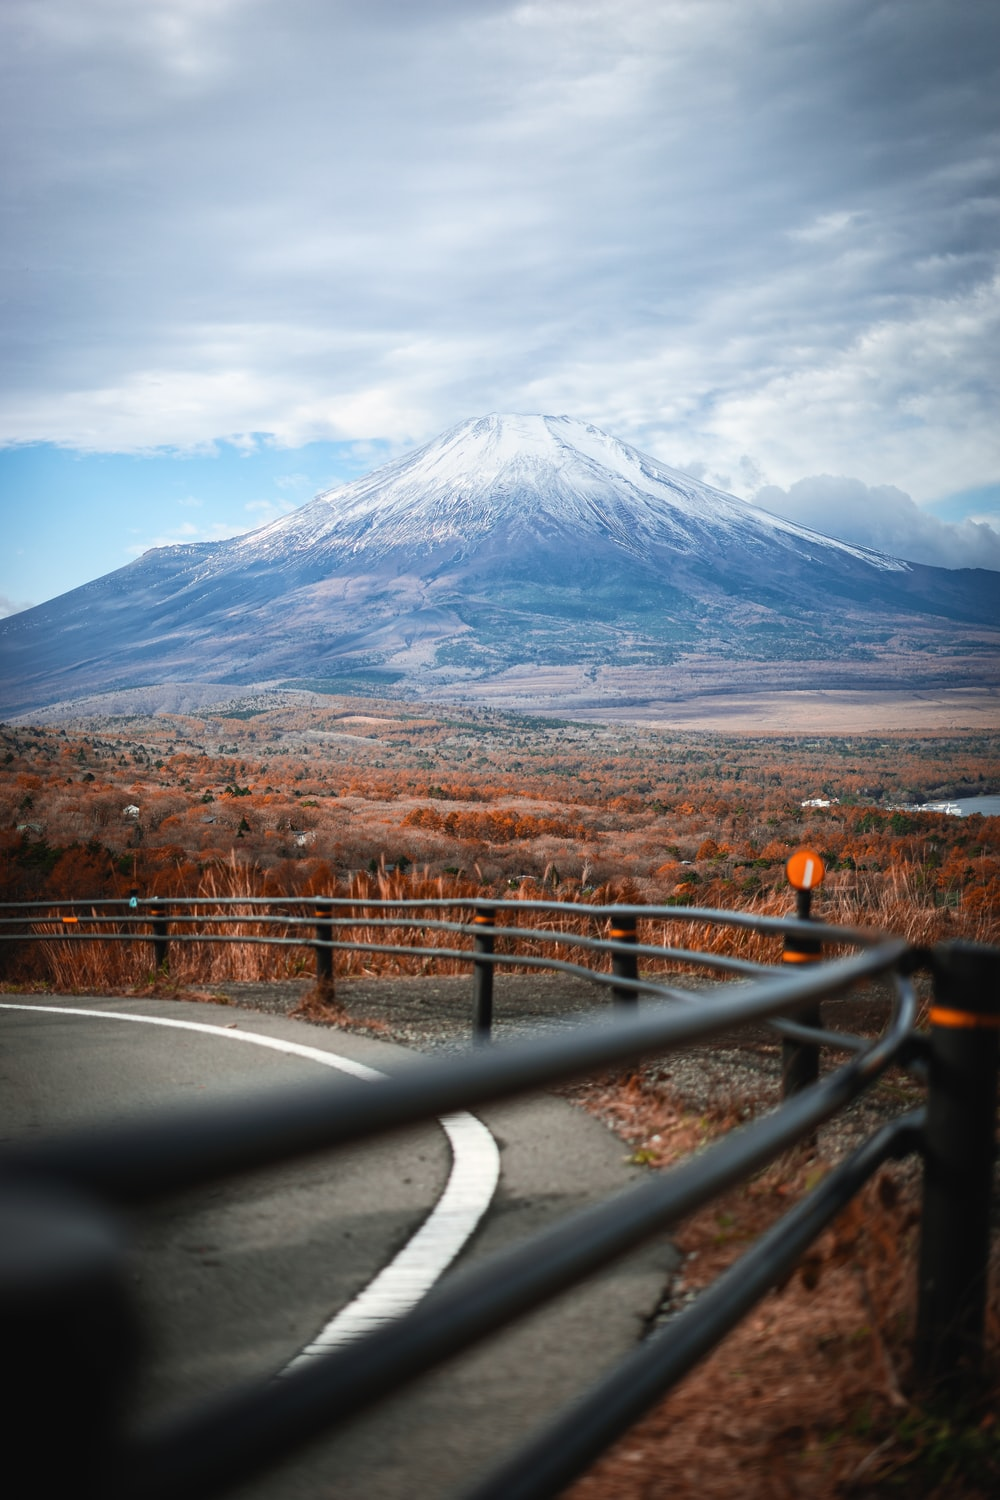 Japan Mountain Pictures Download Free Images On Unsplash